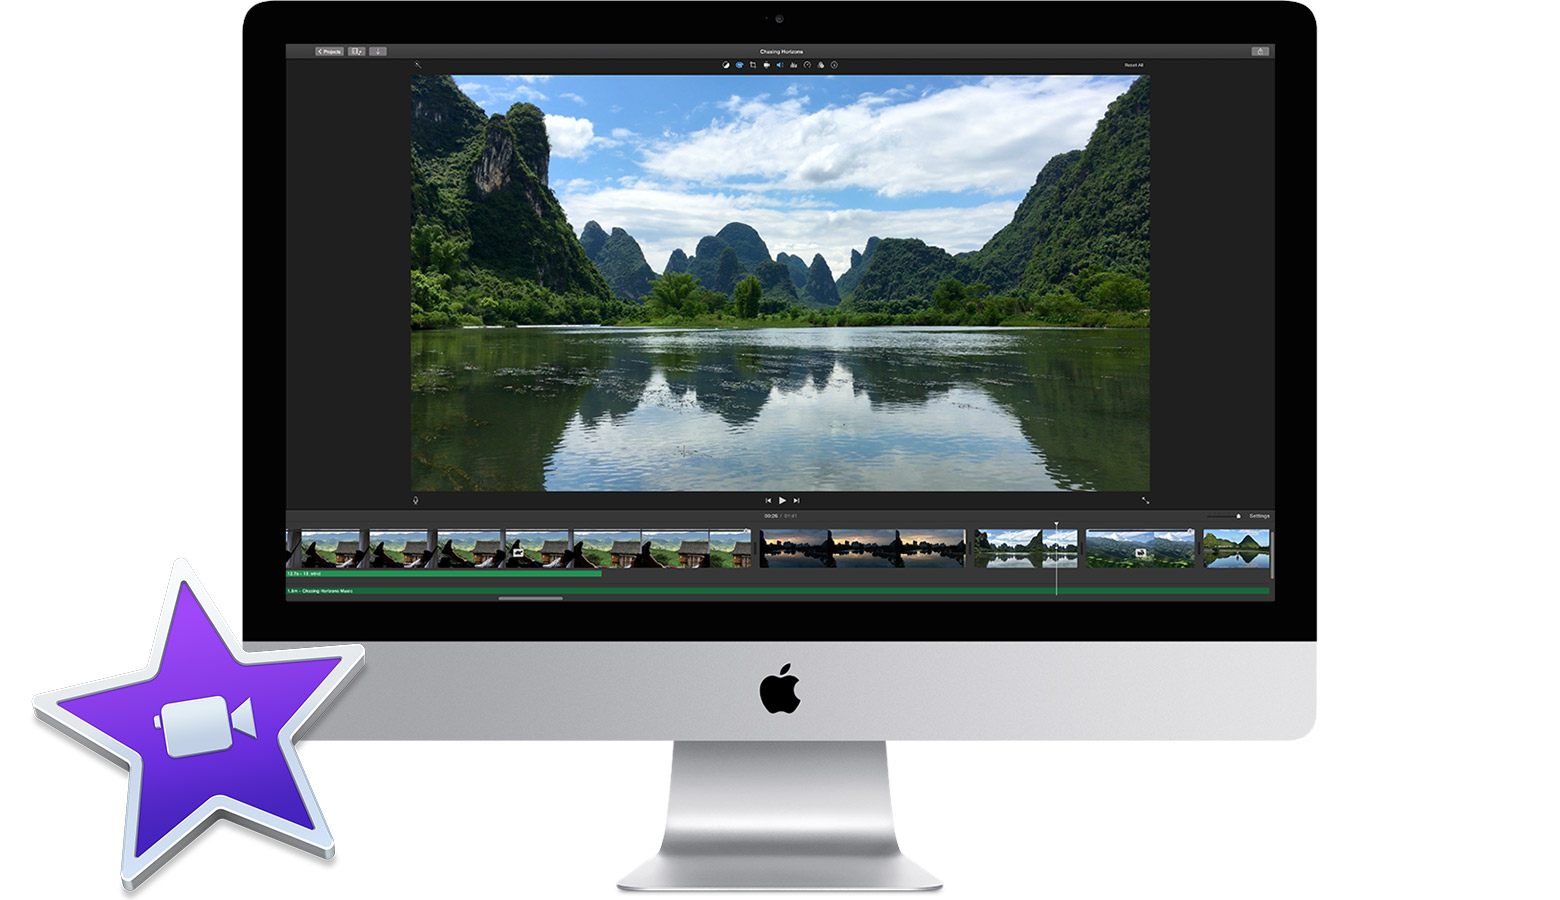 iMovie supported cameras - Apple Support